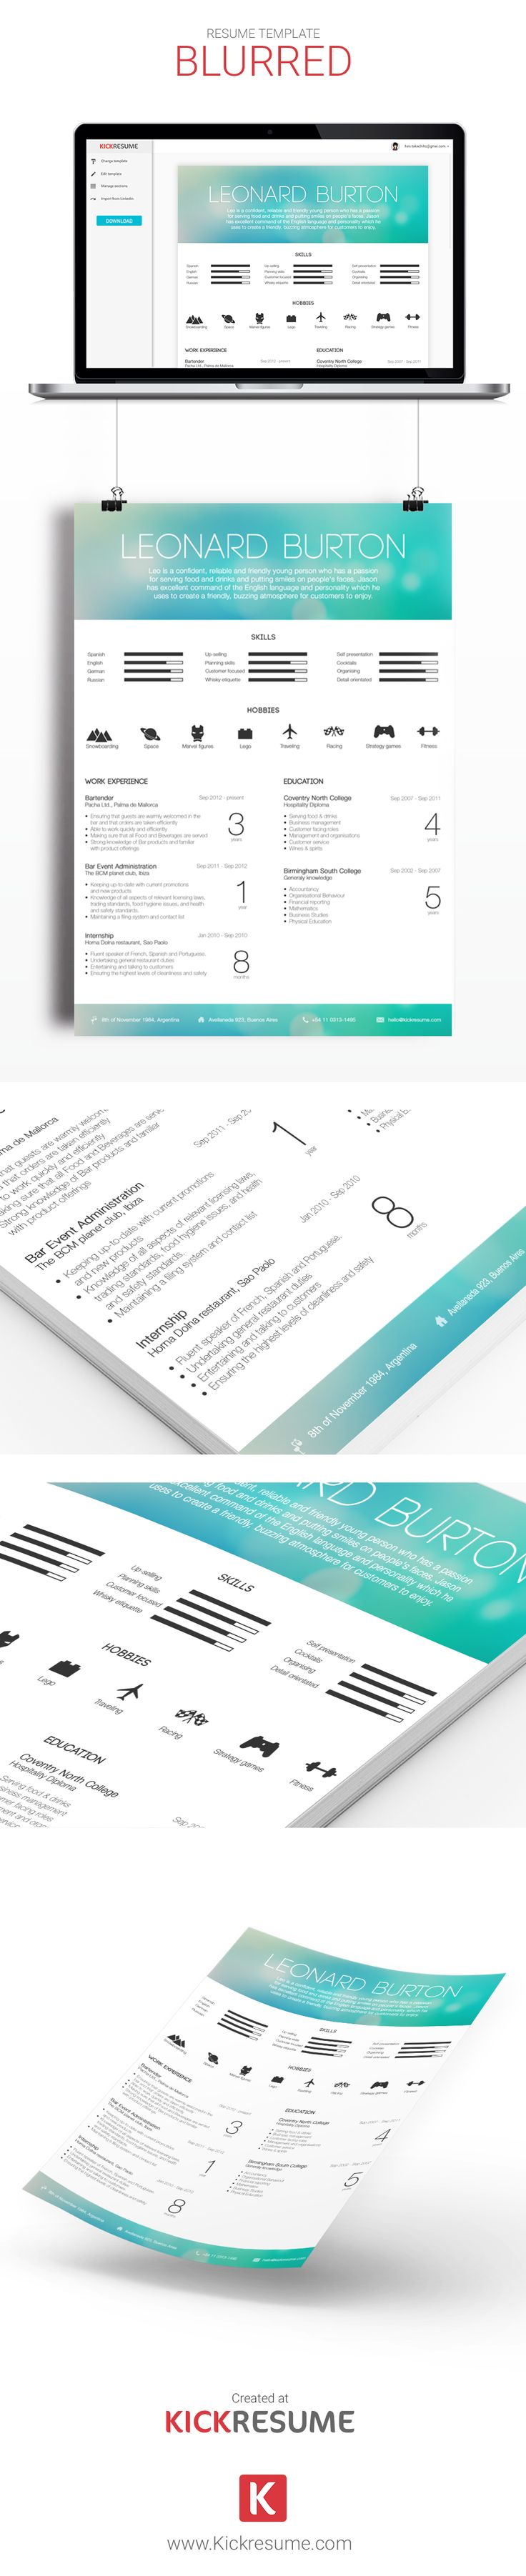 best 25 perfect resume ideas on pinterest resume ideas perfect cv and resume builder template